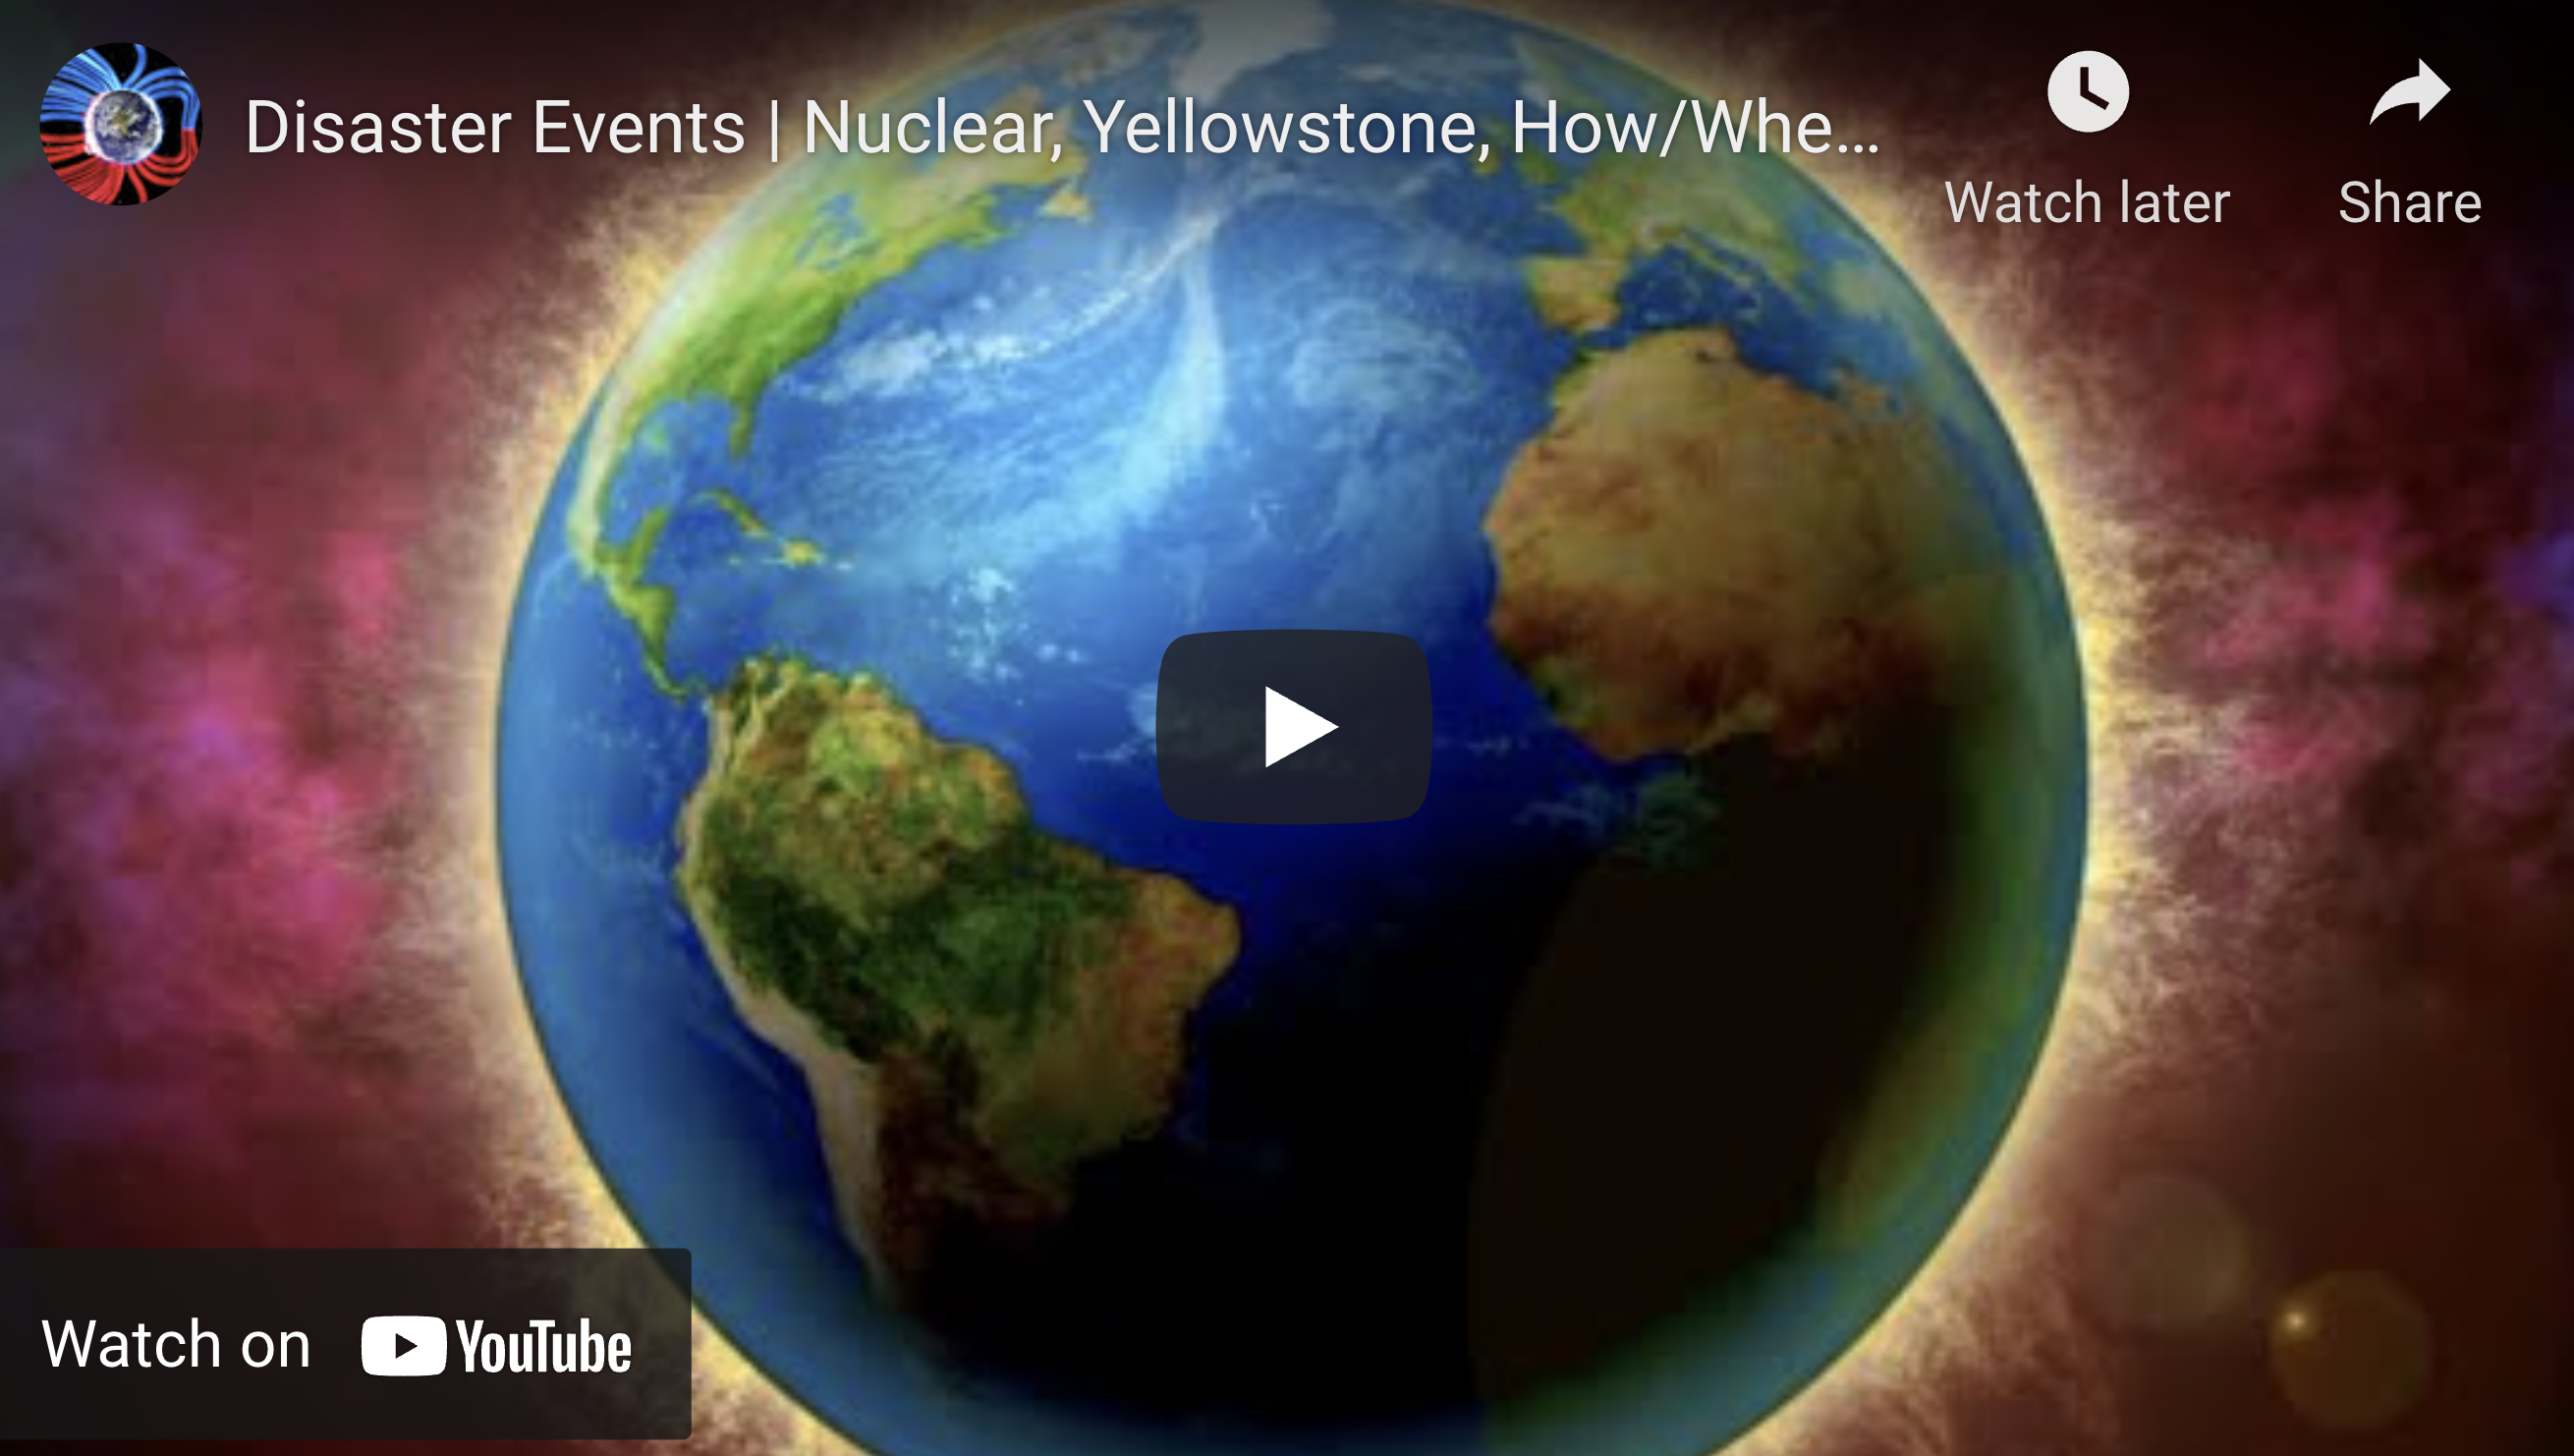 Suspicious Observers Post EXZM Zack Mount Disaster Events Nuclear Yellowstone How When Attitude June 30th 2021